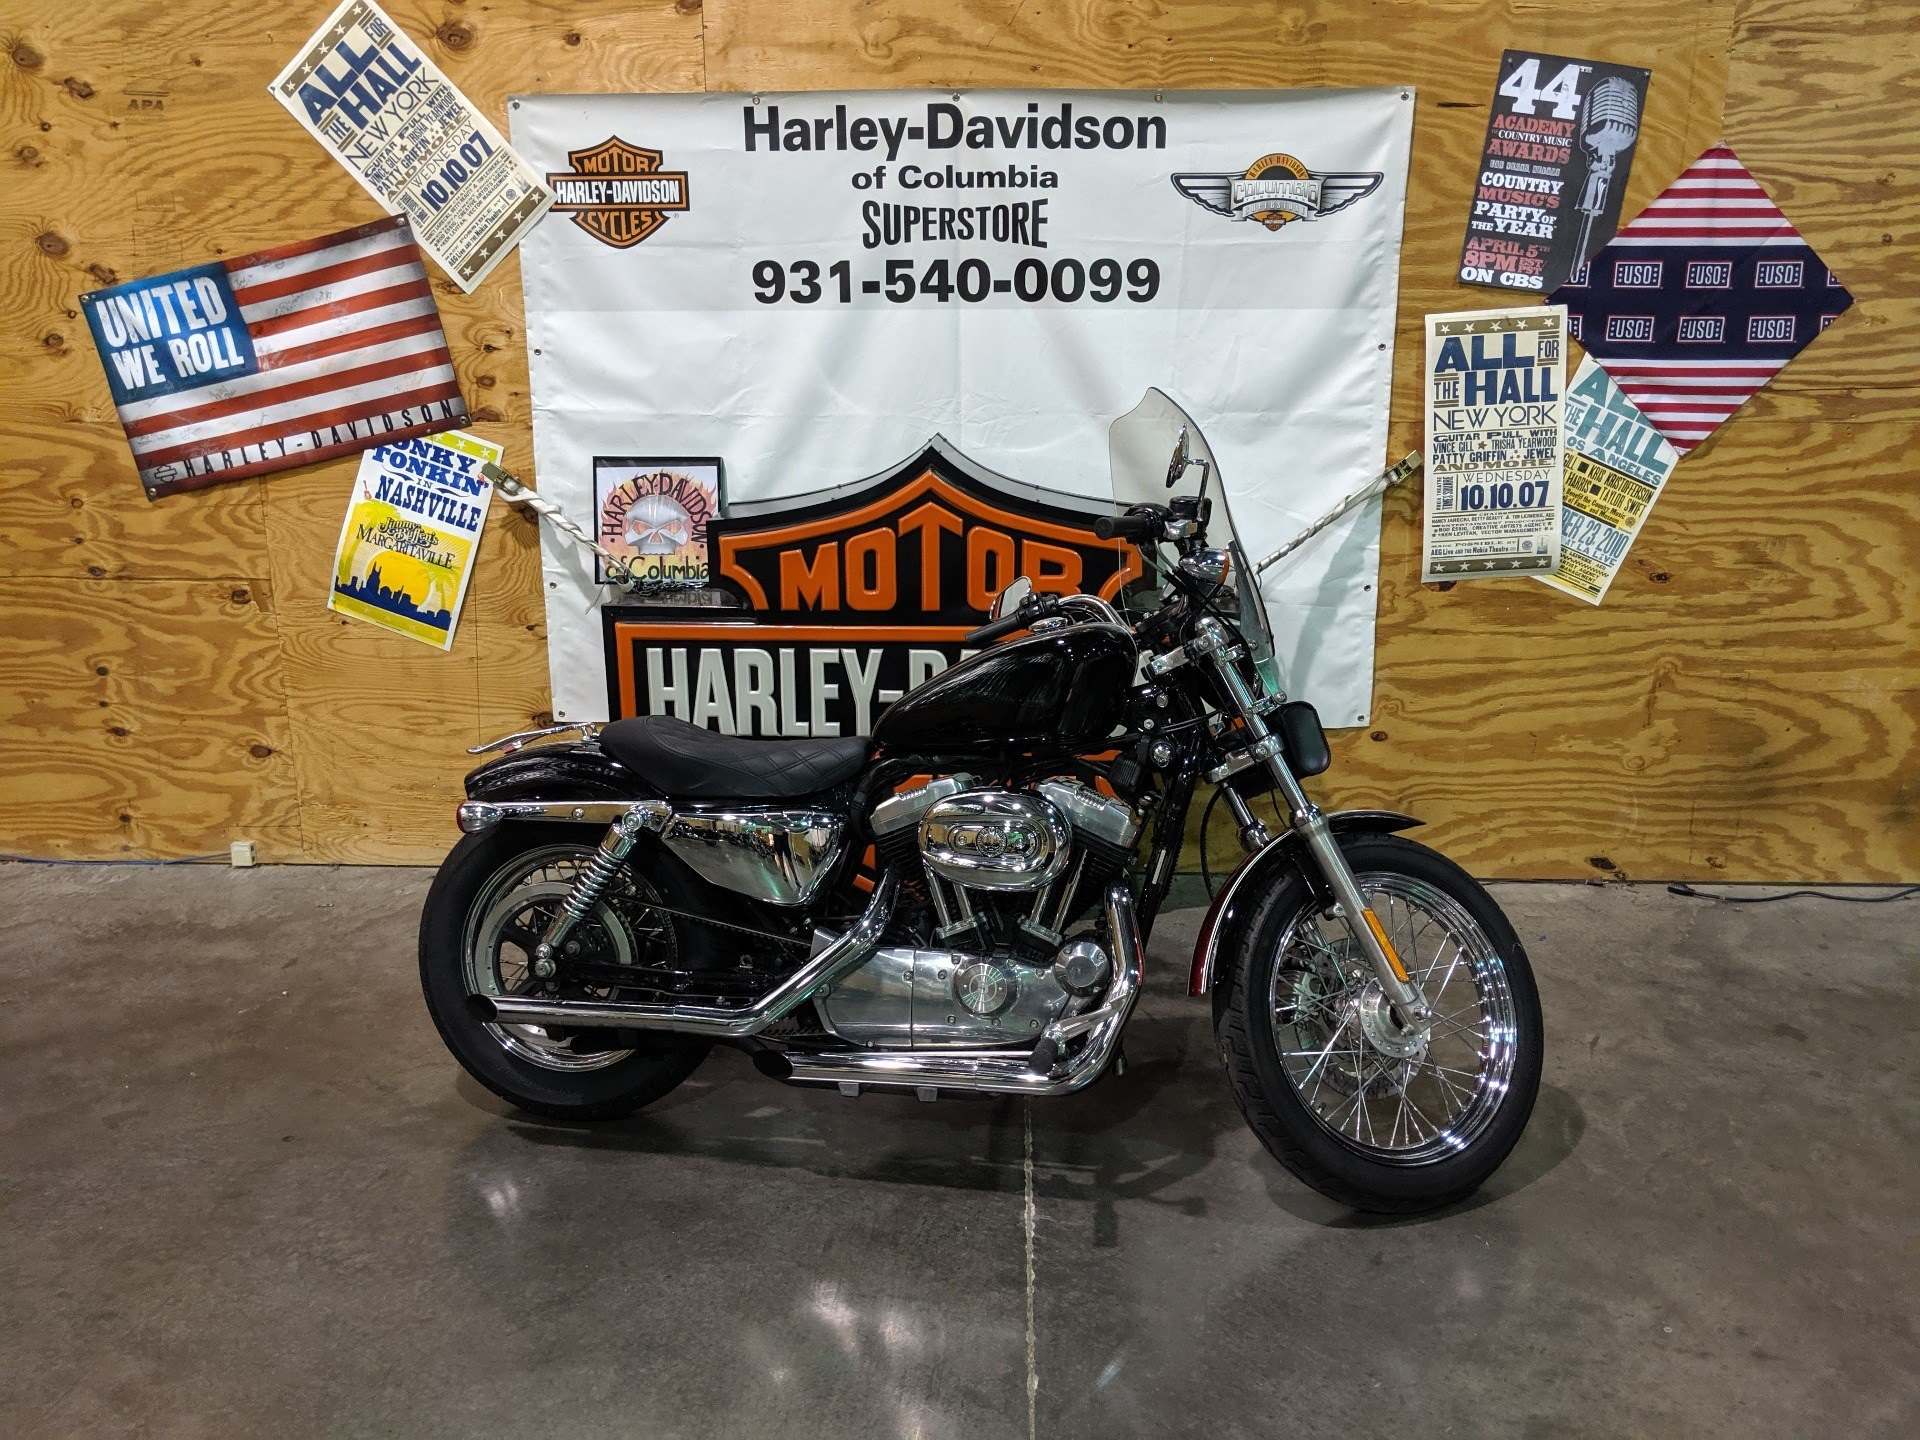 2006 Harley-Davidson xl883 in Columbia, Tennessee - Photo 1